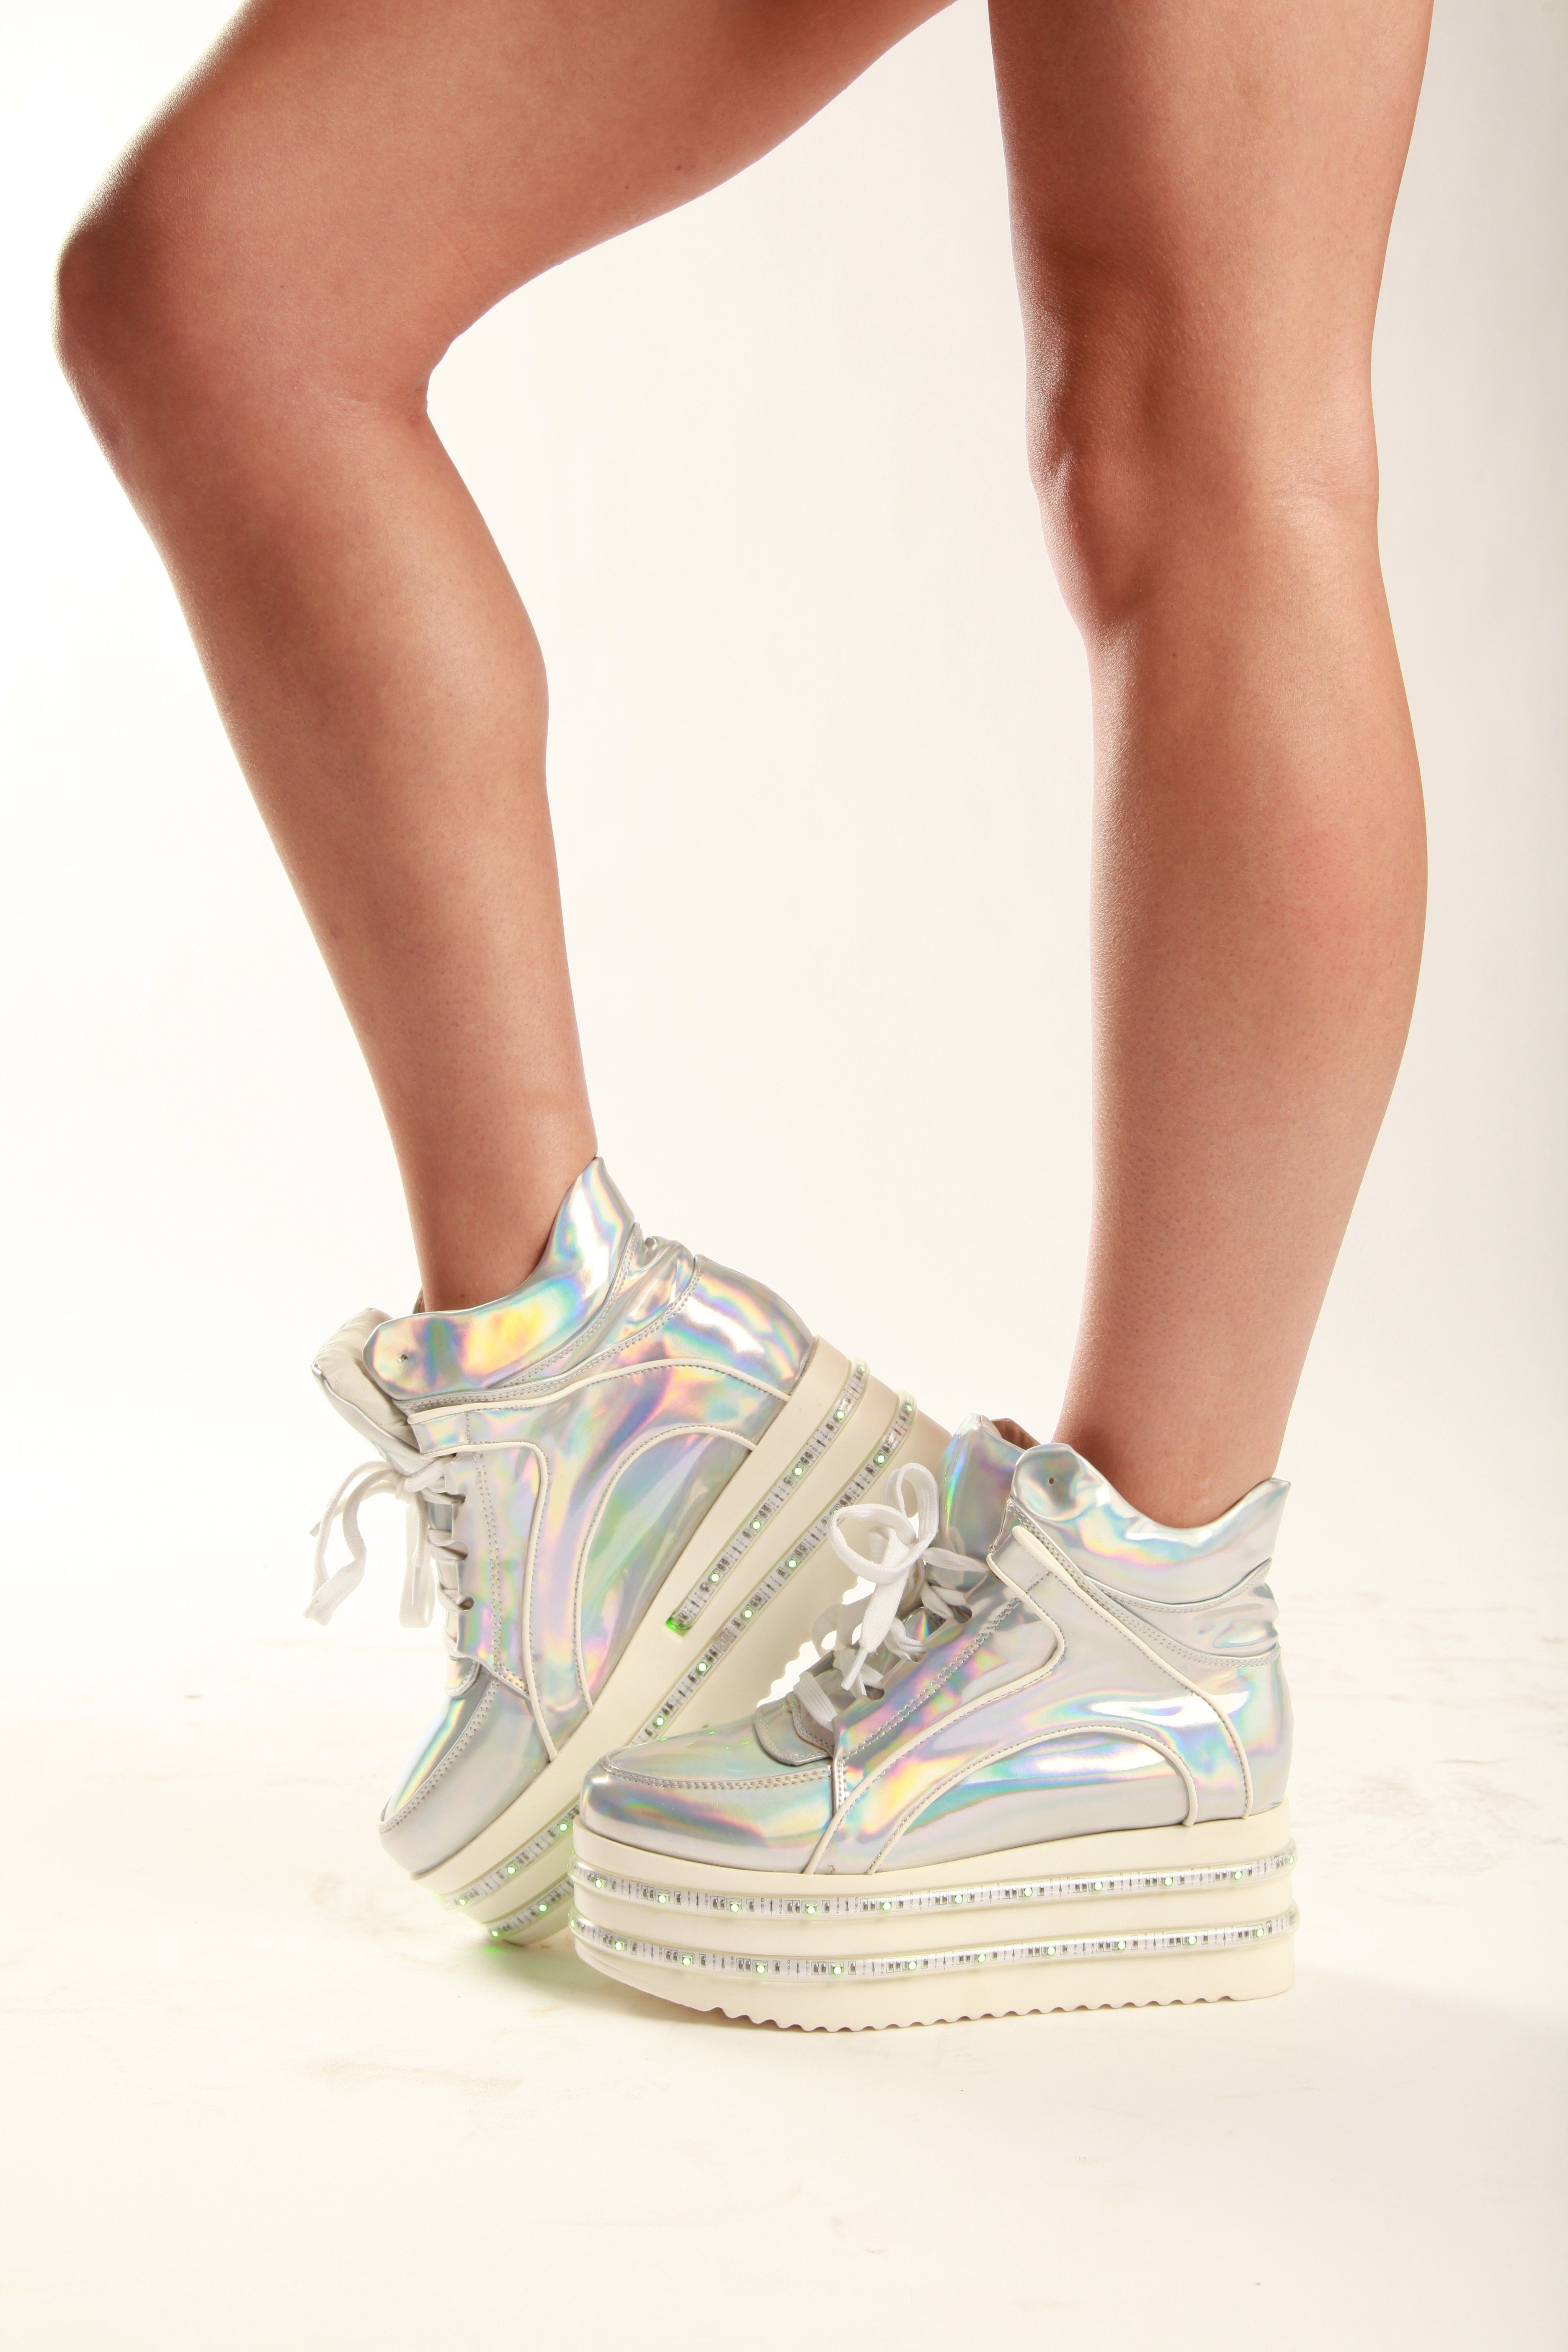 21f23b15ae3 i wish    Be the first to get our new light-up led platform shoes in hologram  silver with two rows of color changing LEDS! Easily change the color of  your ...